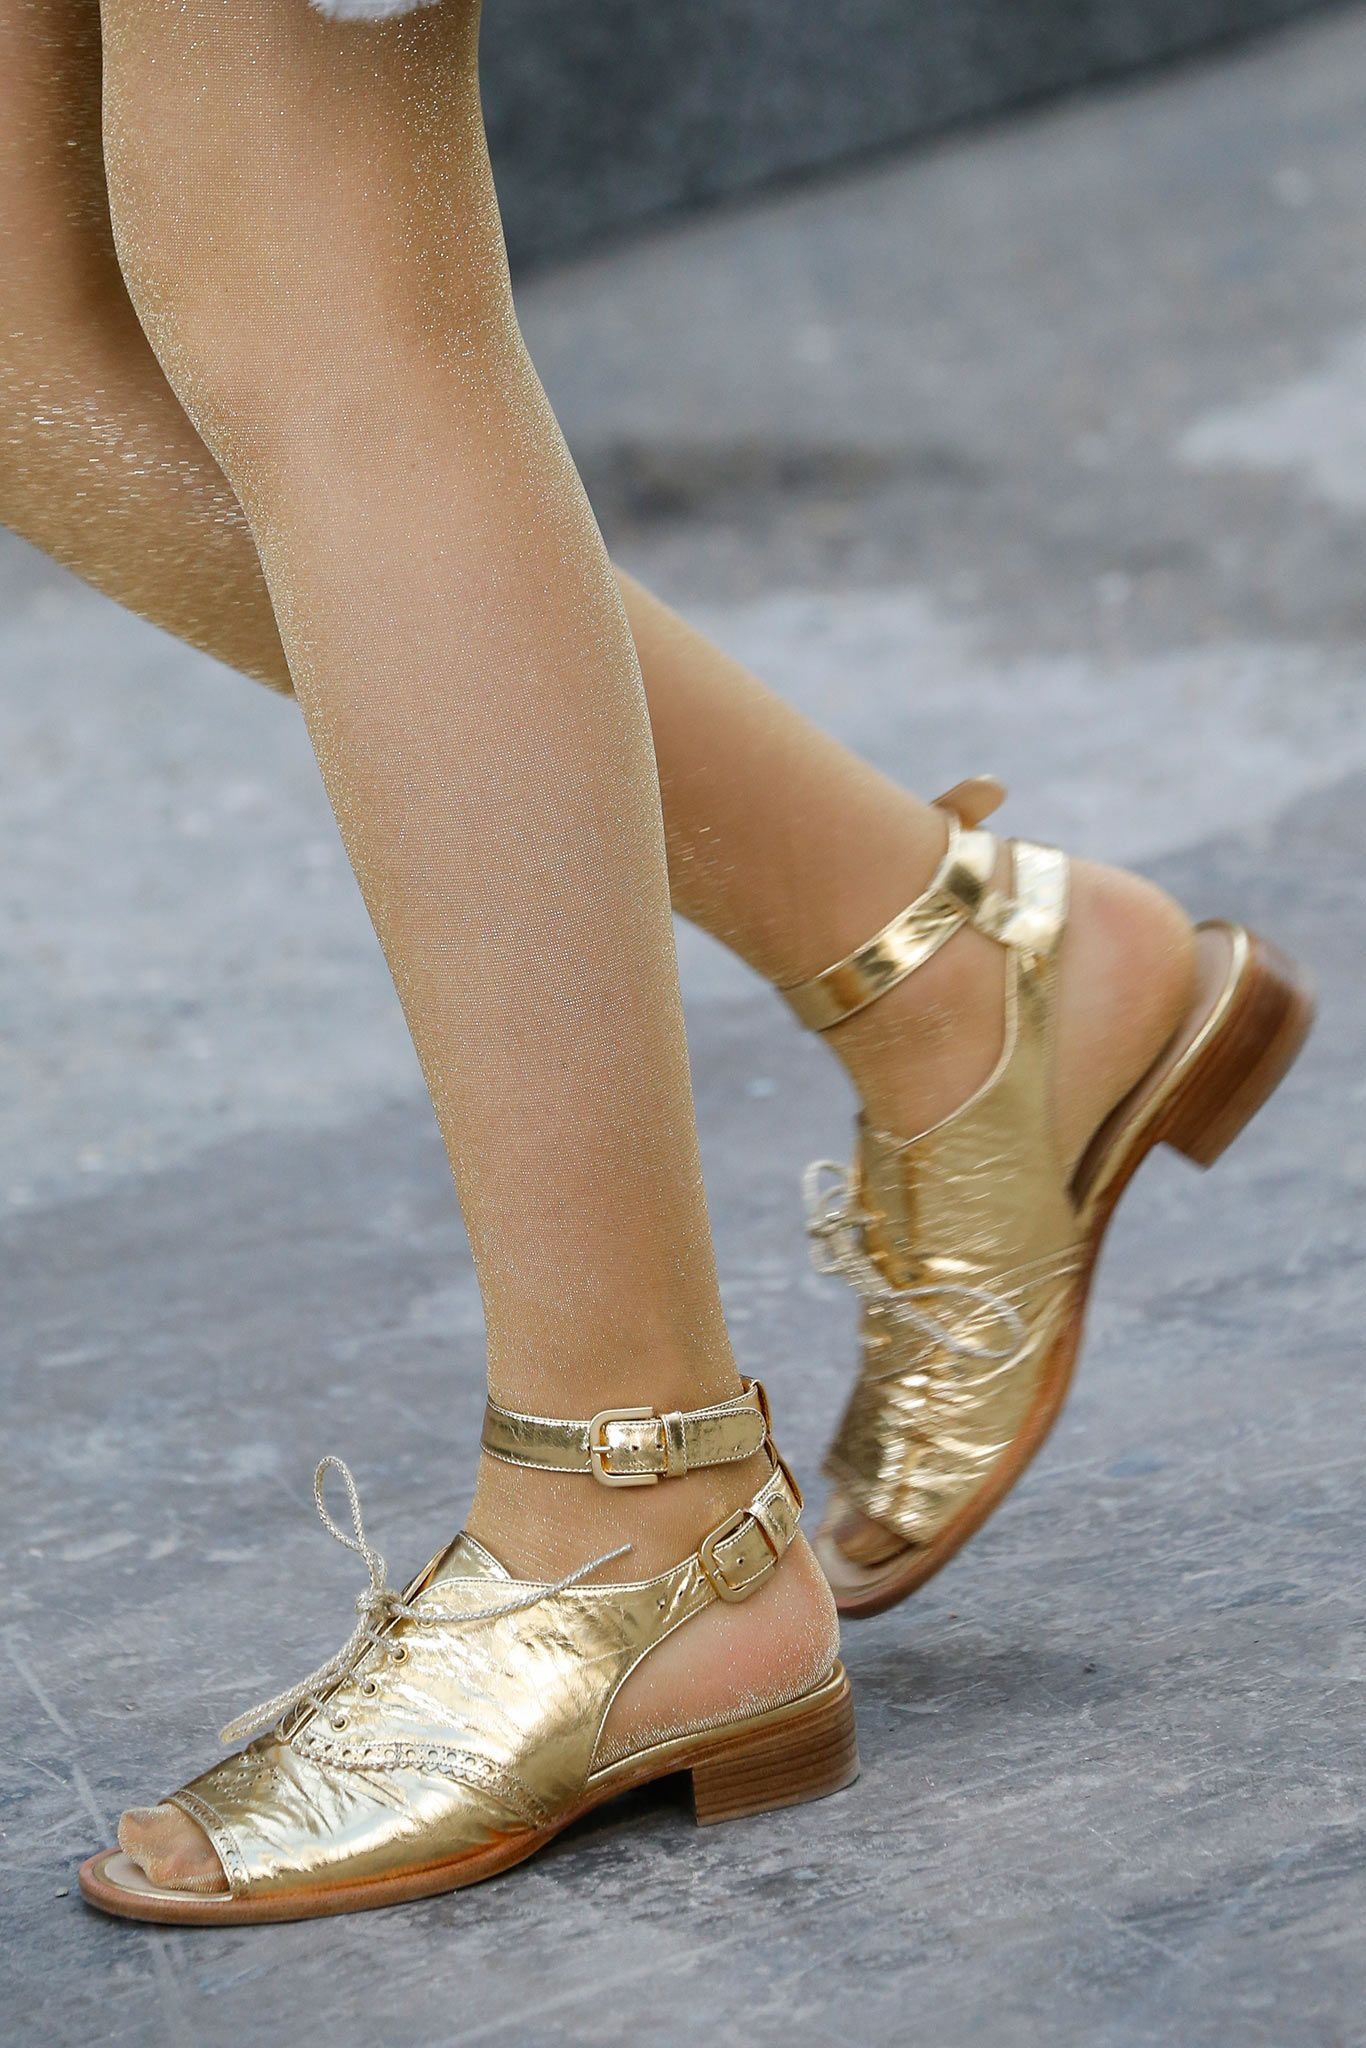 3e683f8b33ca Gold shoes at Chanel. Chanel Spring 2015 Ready-to-Wear - Collection -  Gallery - Style.com